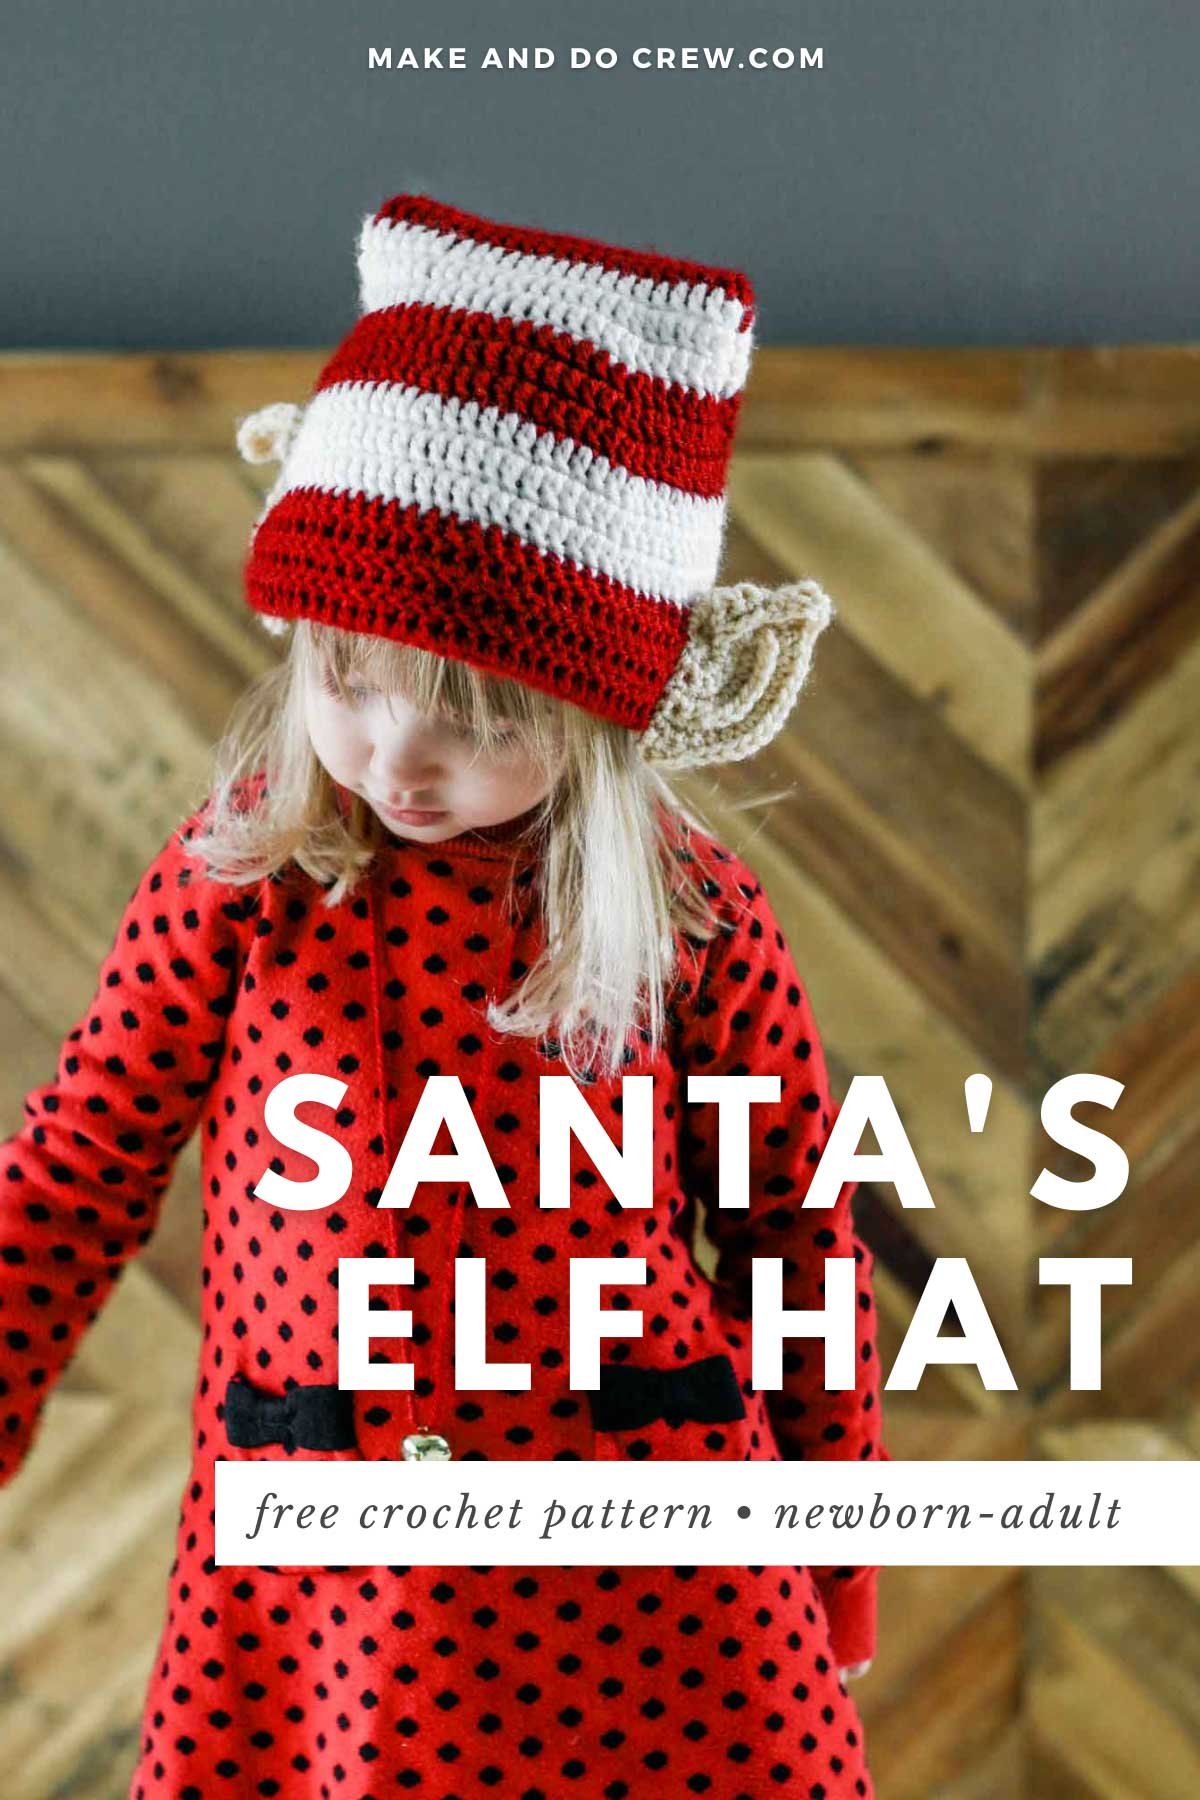 A girl wearing a crocheted Santa's elf hat with crocheted ears.